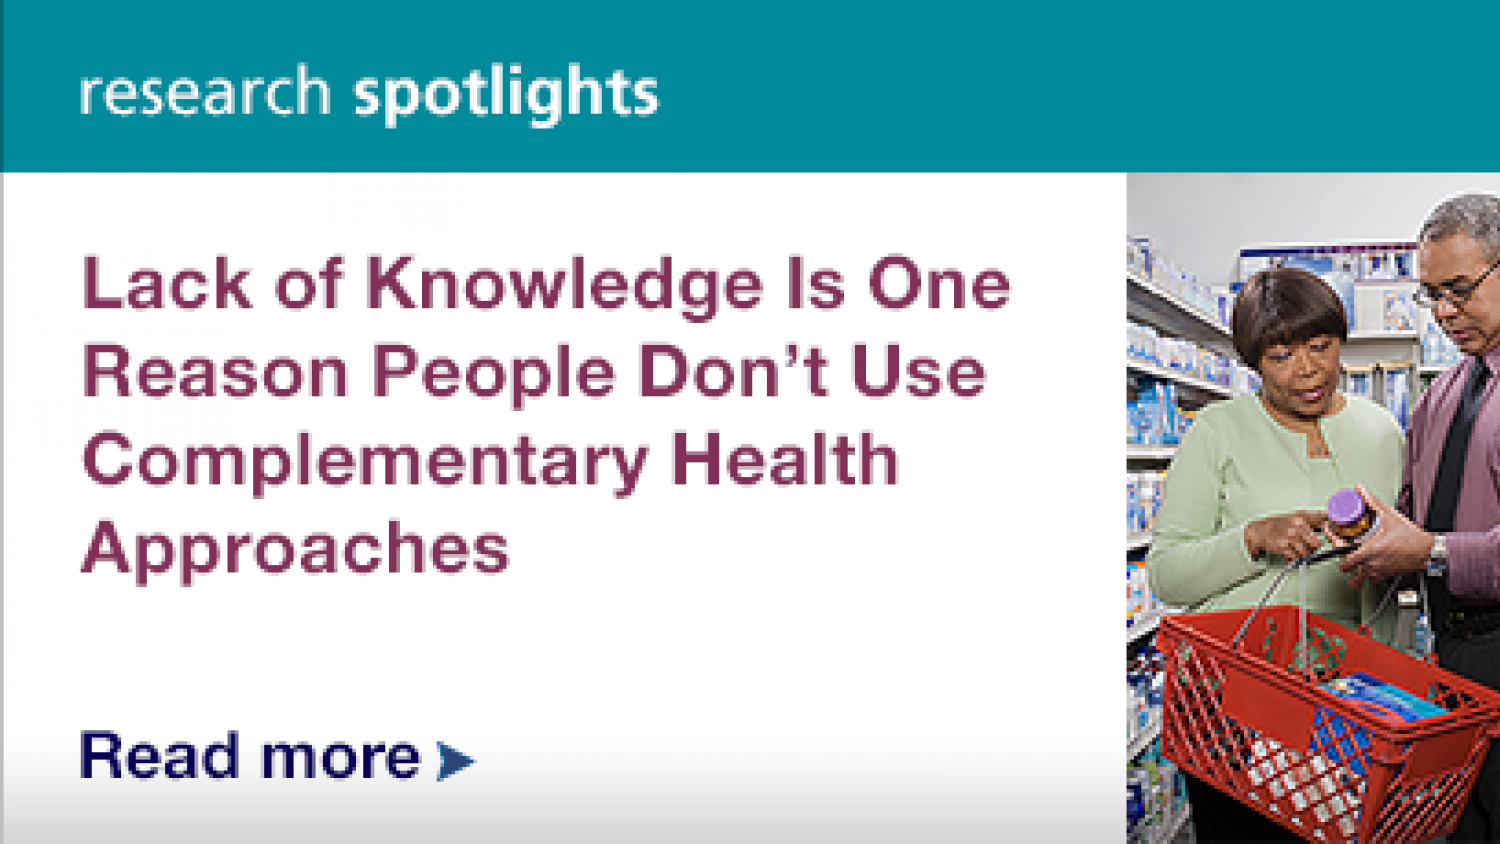 Research Spotlight: Lack of Knowledge is One Reason People Don't Use Complementary Health Approches.  READ MORE